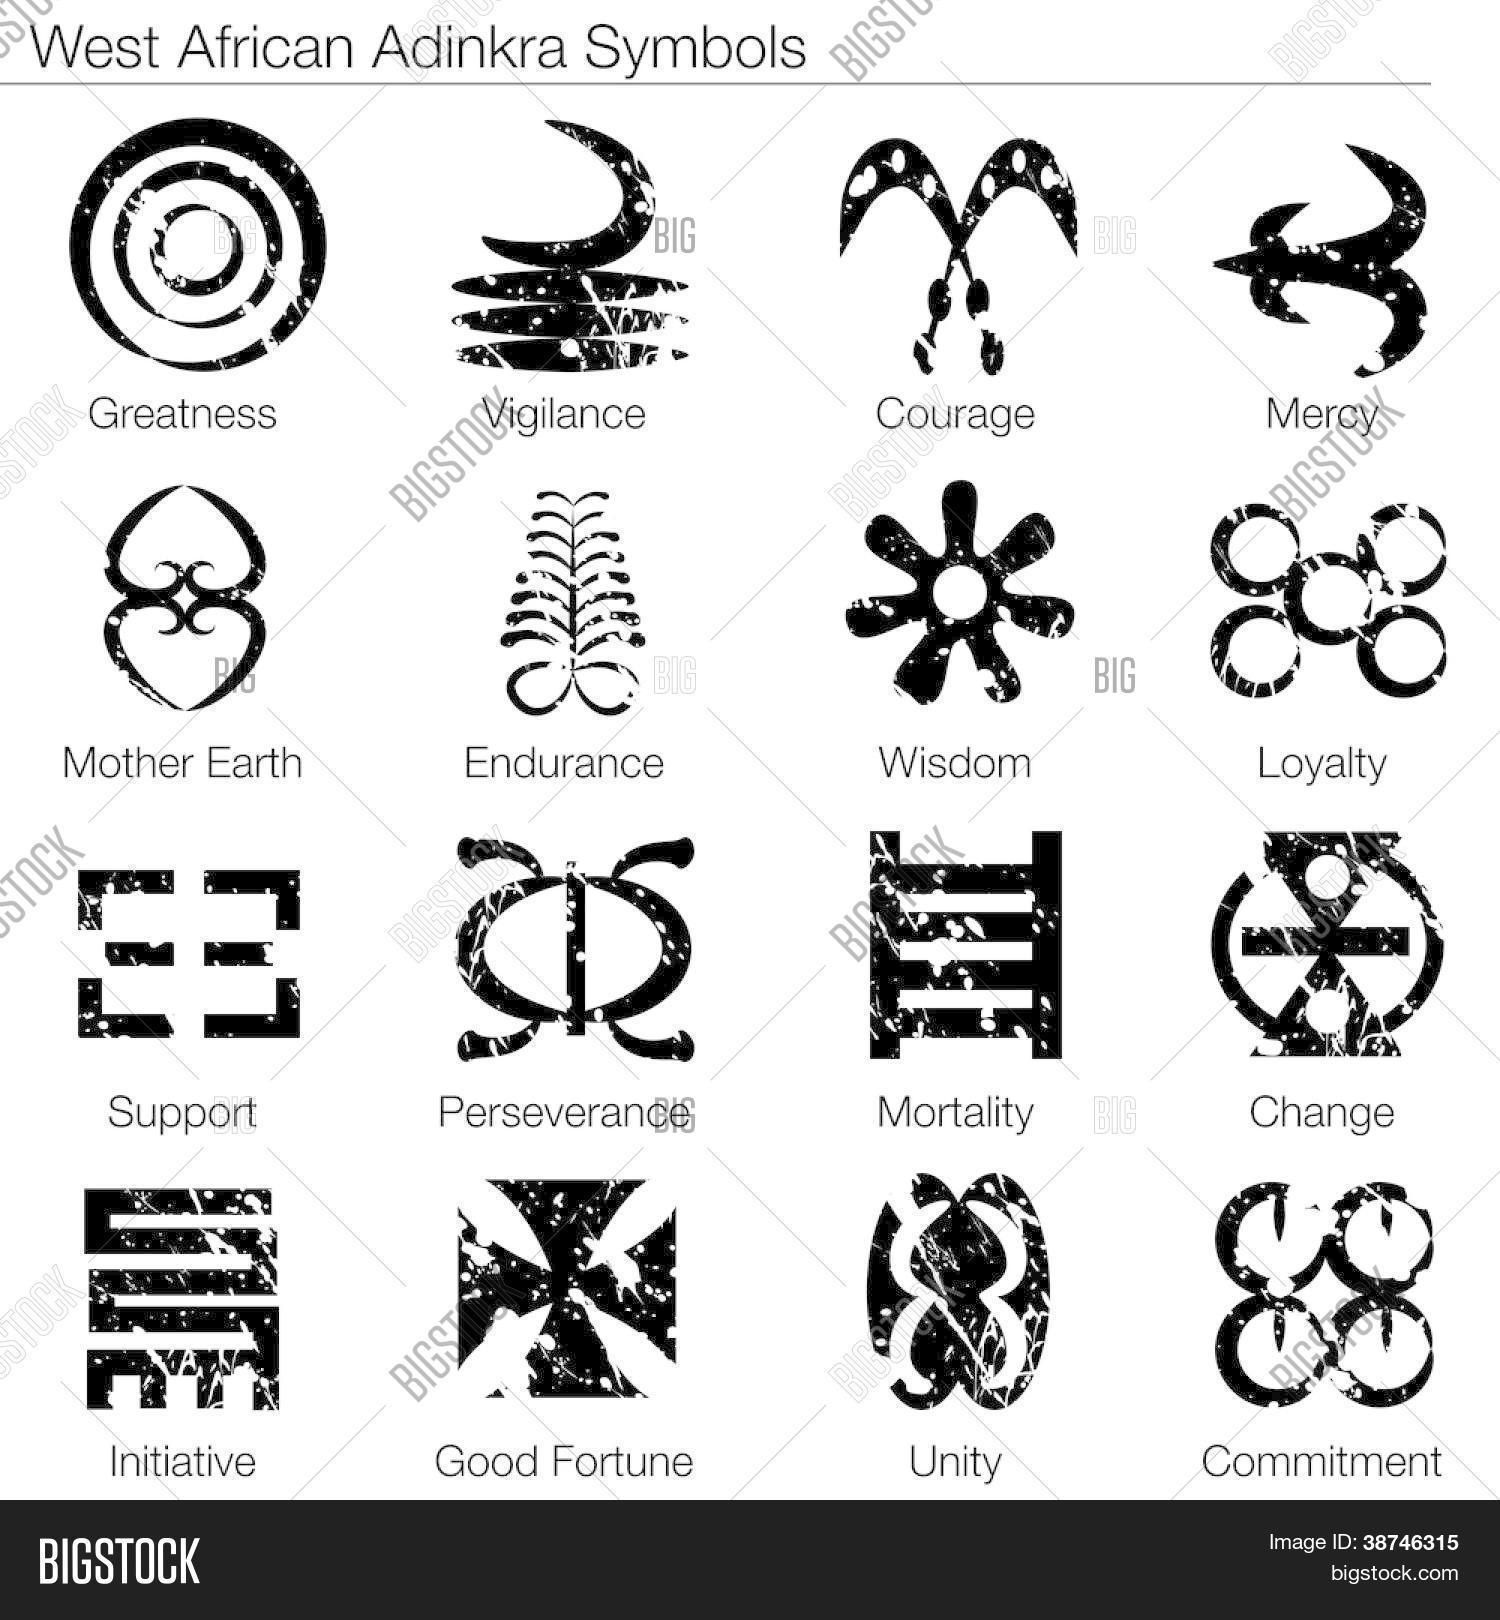 African american culture symbols images symbol and sign ideas uma imagem de um smbolos adinkra oeste africano adinkra west african andinkra symbols to use at buycottarizona